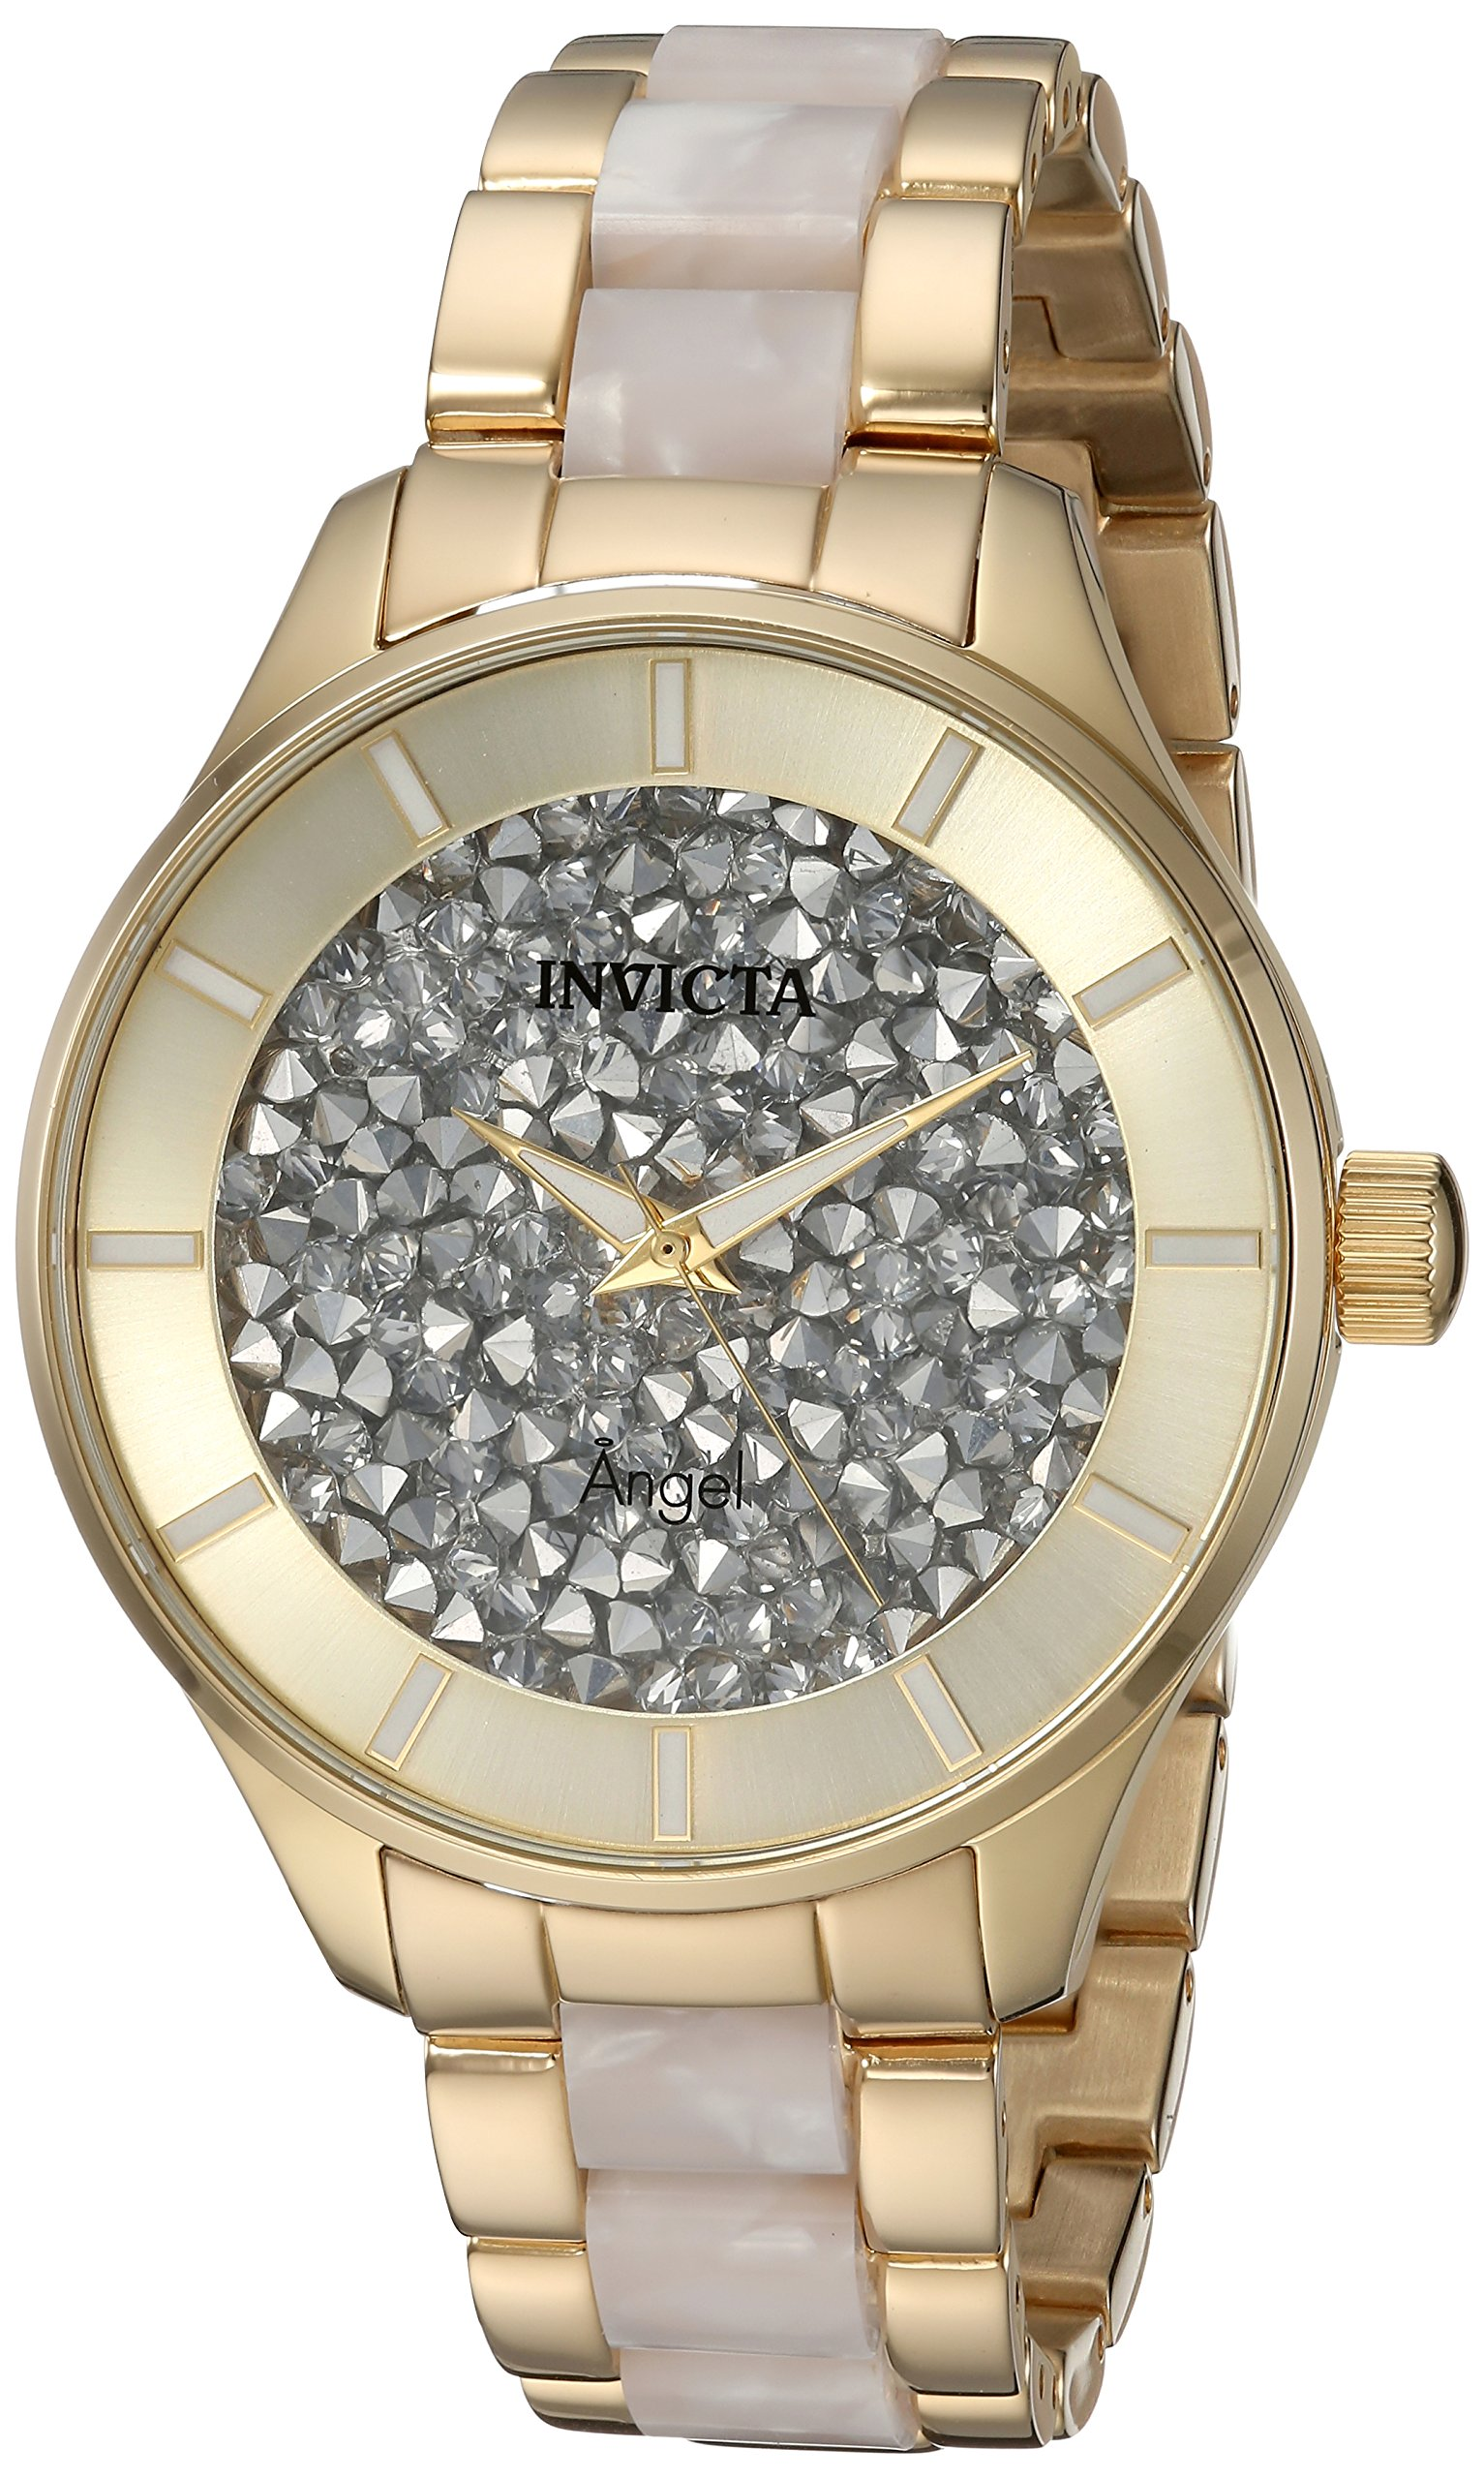 ویکالا · خرید  اصل اورجینال · خرید از آمازون · Invicta Women's 'Angel' Quartz Stainless Steel Casual Watch, Color:Two Tone (Model: 24666) wekala · ویکالا